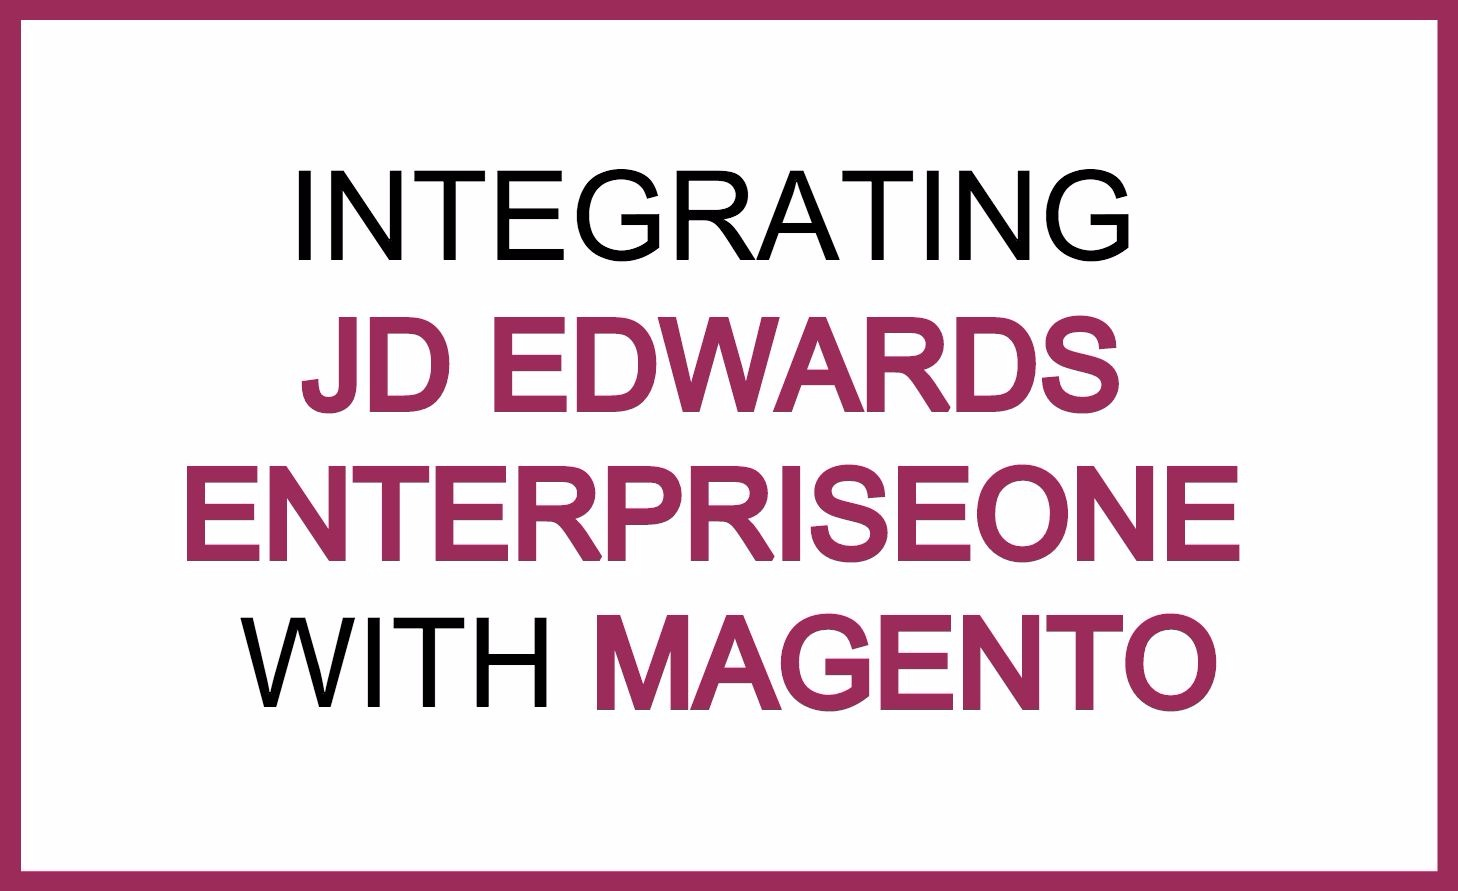 jde and magento integration.jpg